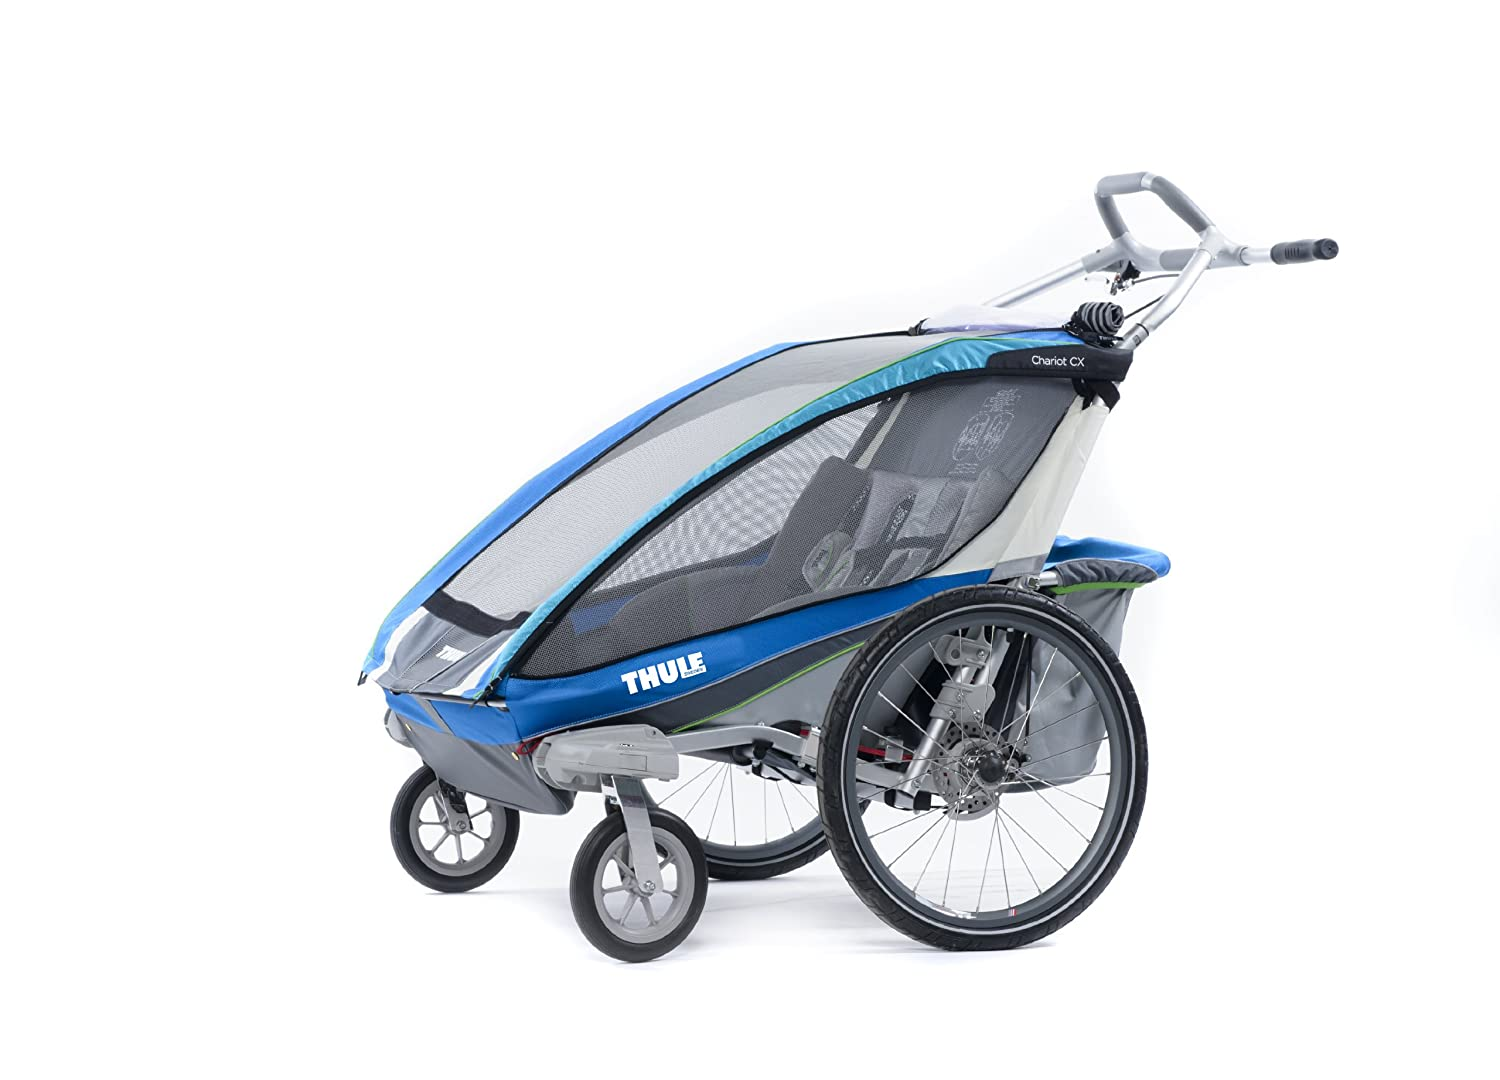 chinook bike with Review Top 5 And Best Chariot Strollers on 585306 Wired Magazine Review Giant Clip as well Bike Trailer Stroller likewise 27 further File RAF Chinook landing at FOB Shawquat in Helmand Province also Us Special Forces Rapid Reaction Mobility Capability Vehicle Pro 639573.